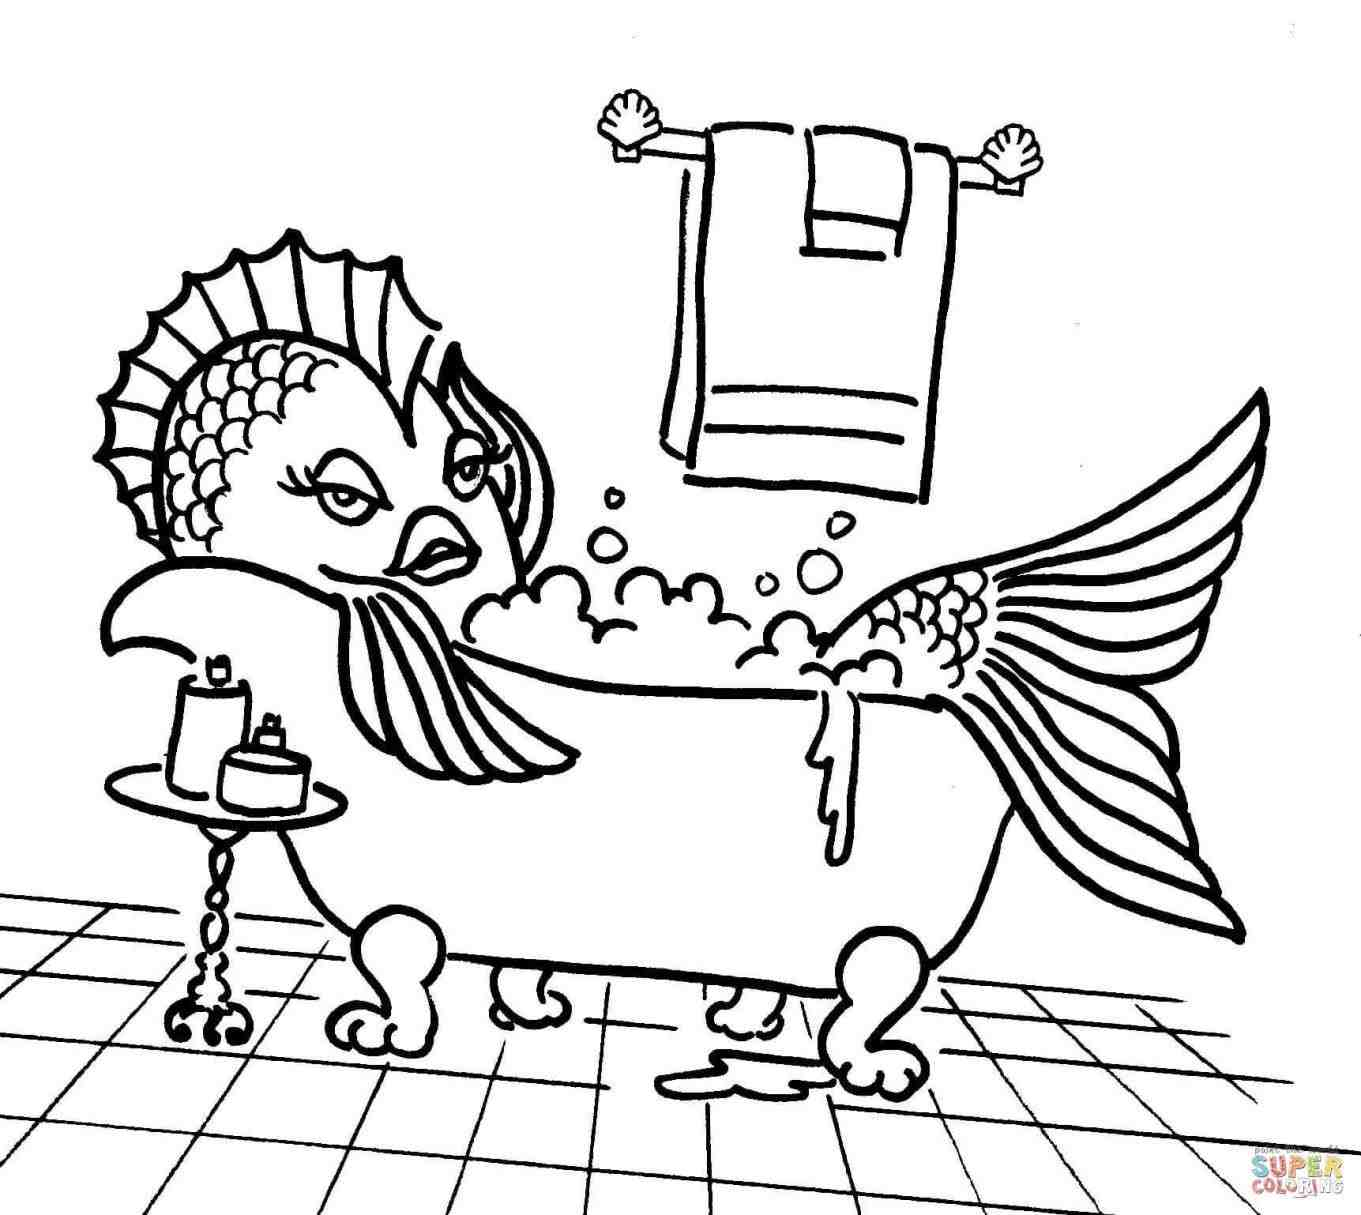 1361x1215 Bluegill Coloring Pages Web Coloring Pages